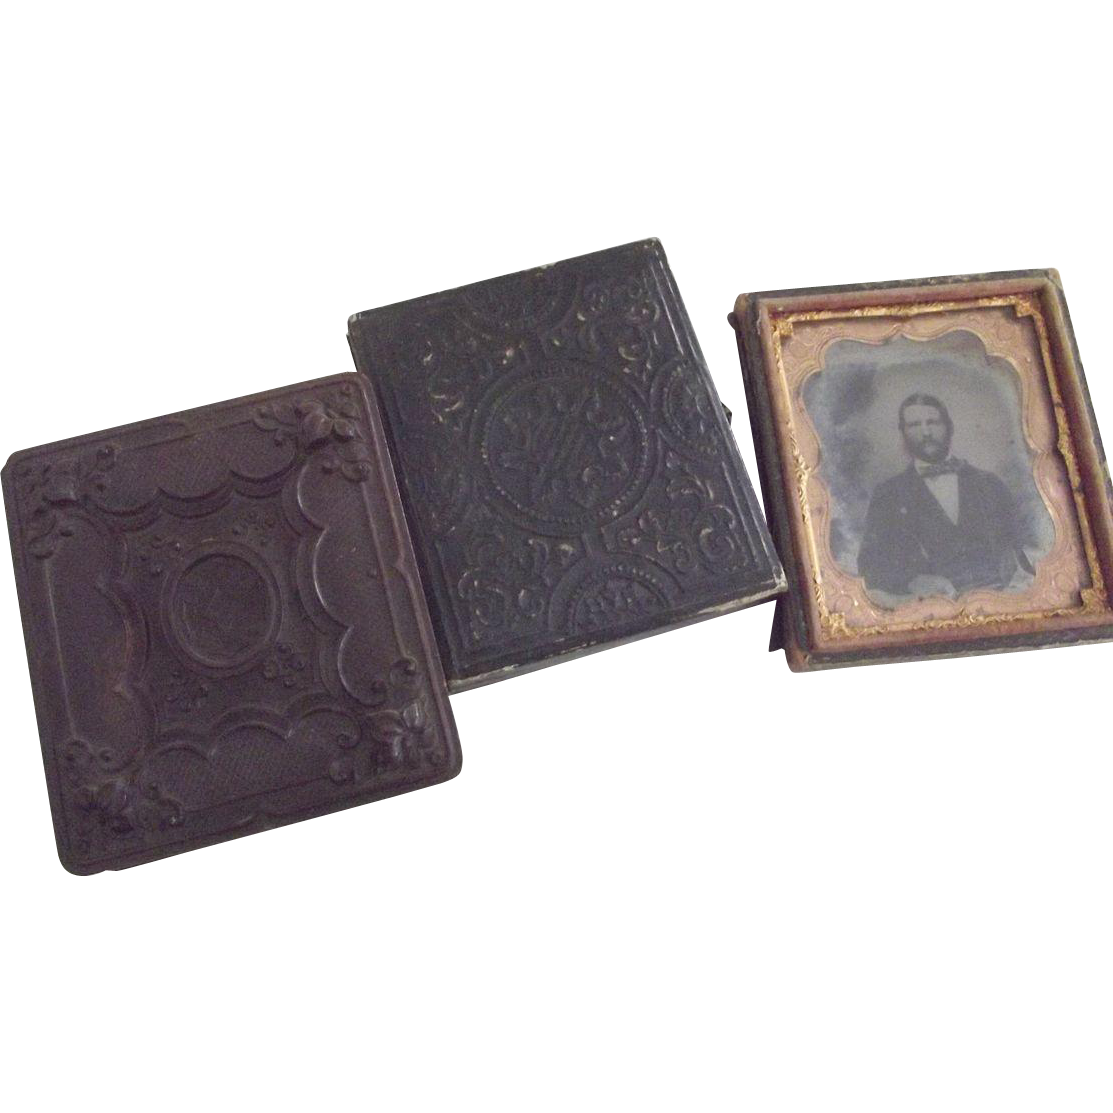 Thermoplastic Case and Two Others, One With Tintype